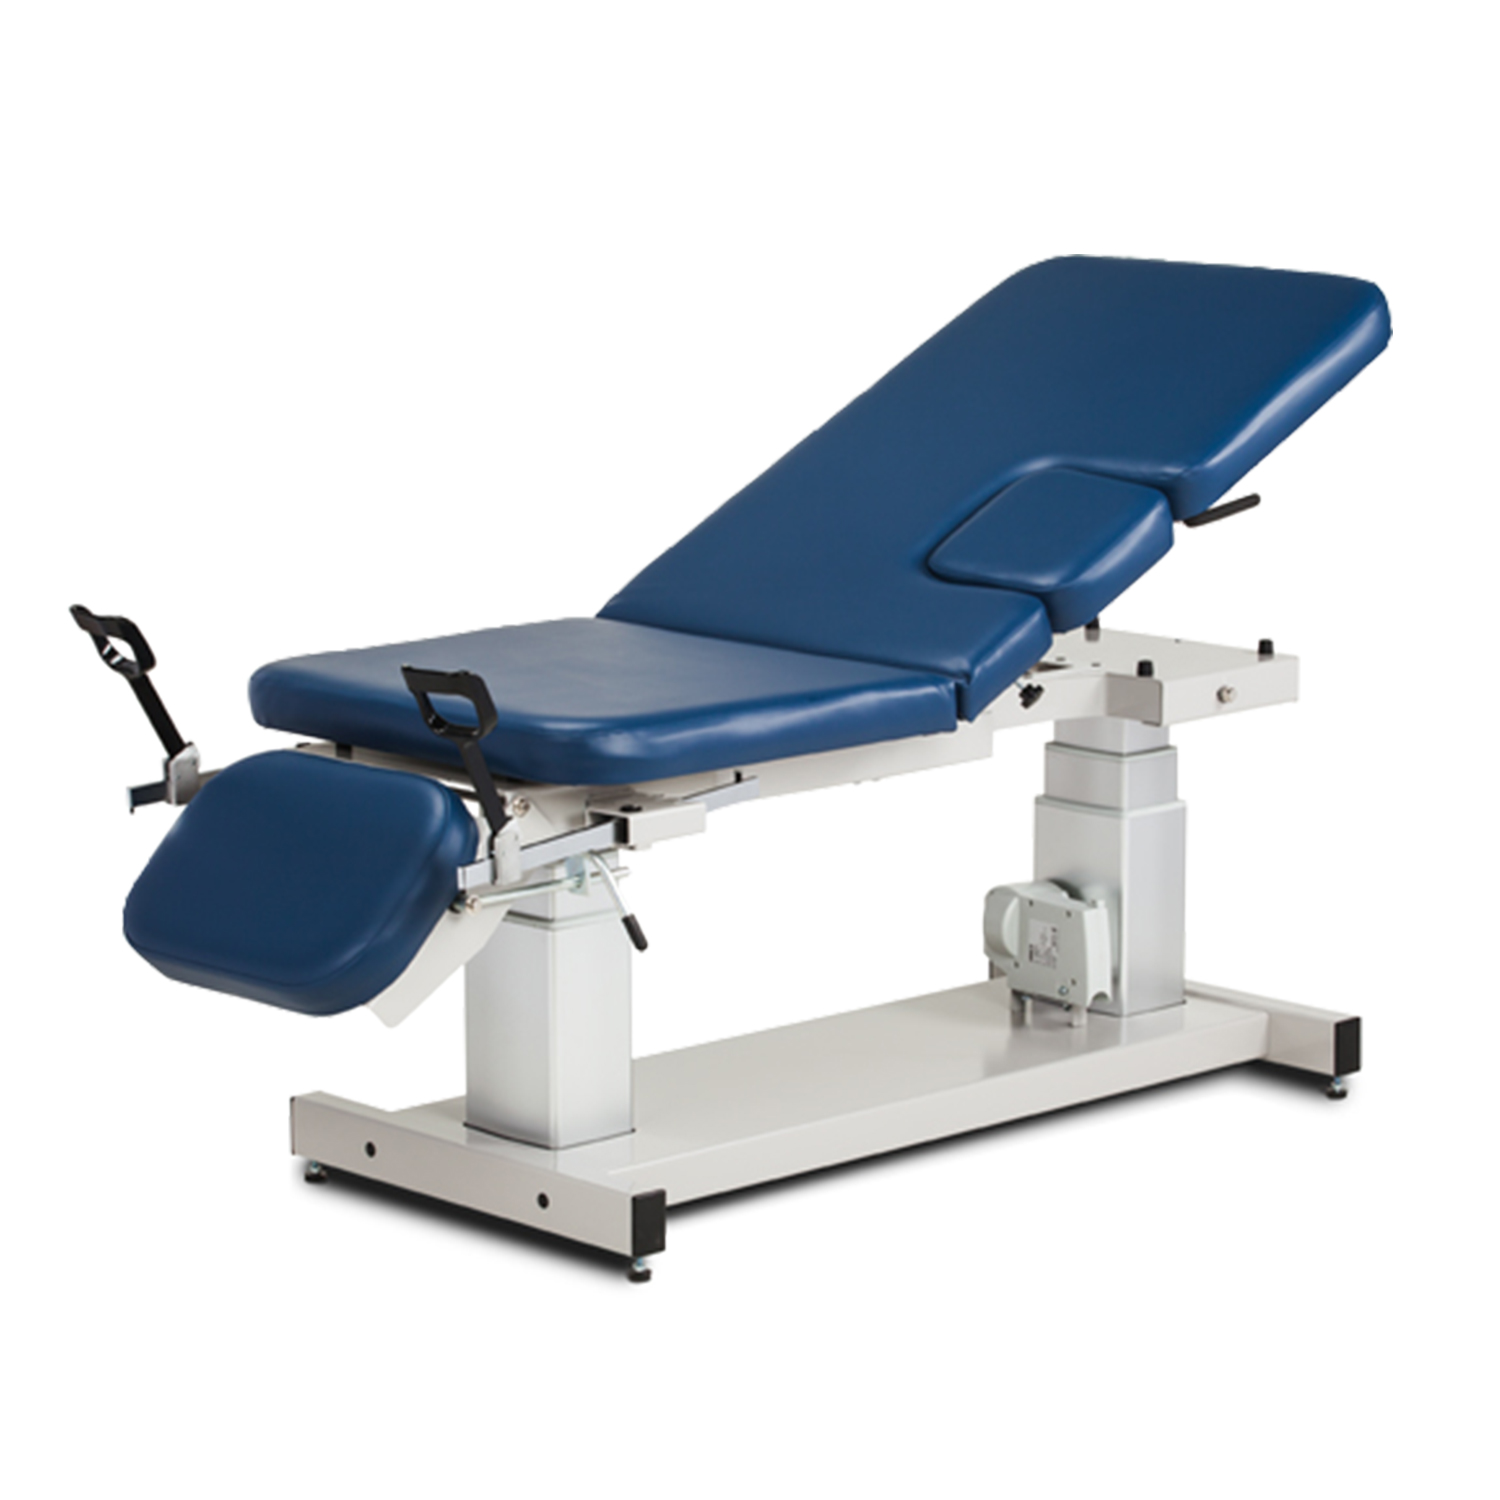 Clinton Multi-Use Imaging Table - 80079